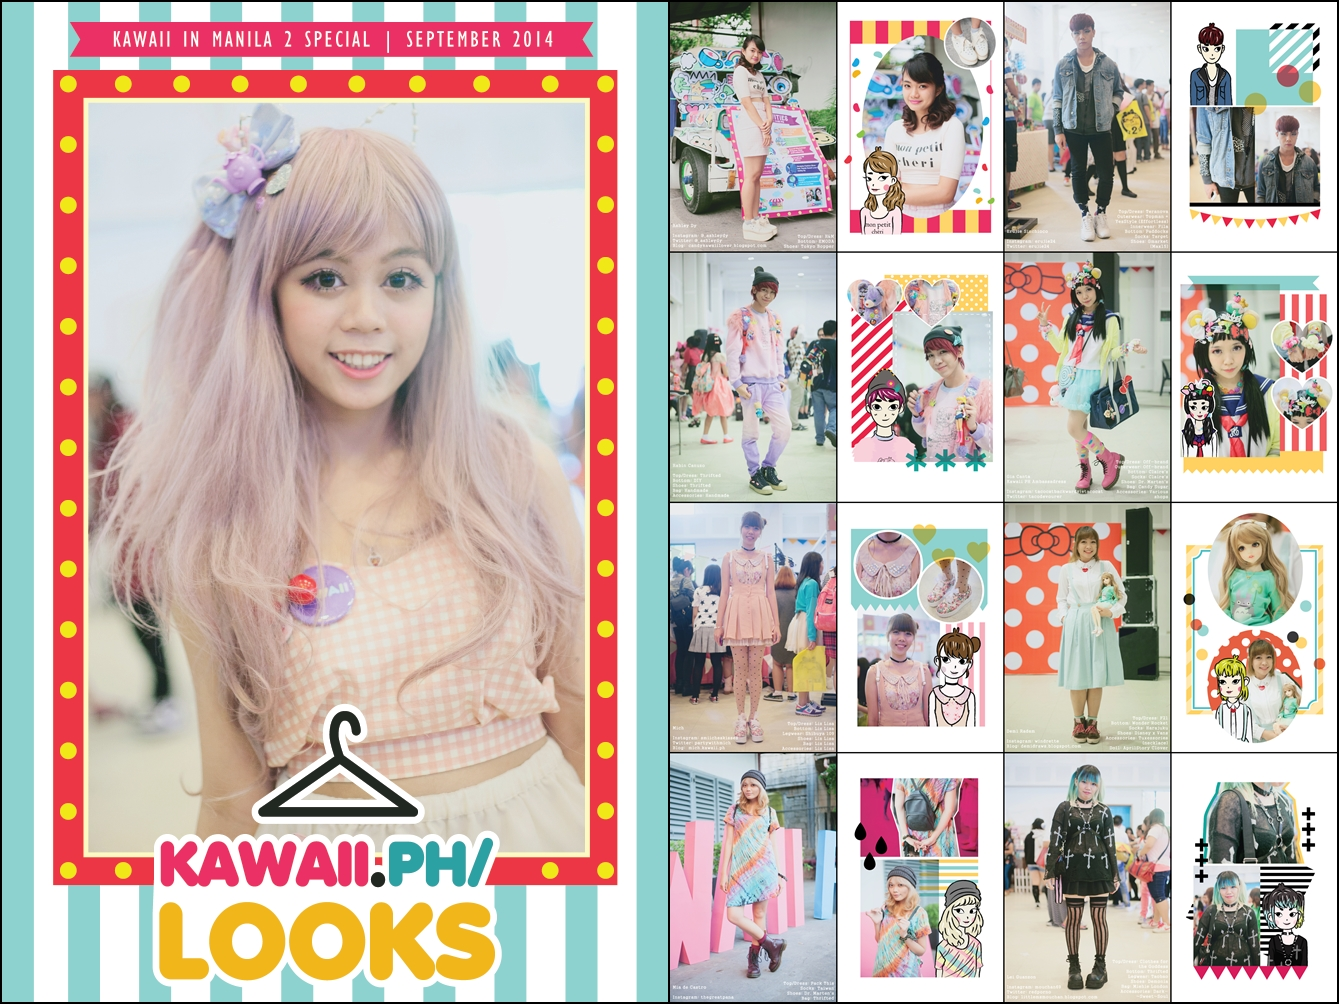 KPH Looks - KIM2 FB update jpg